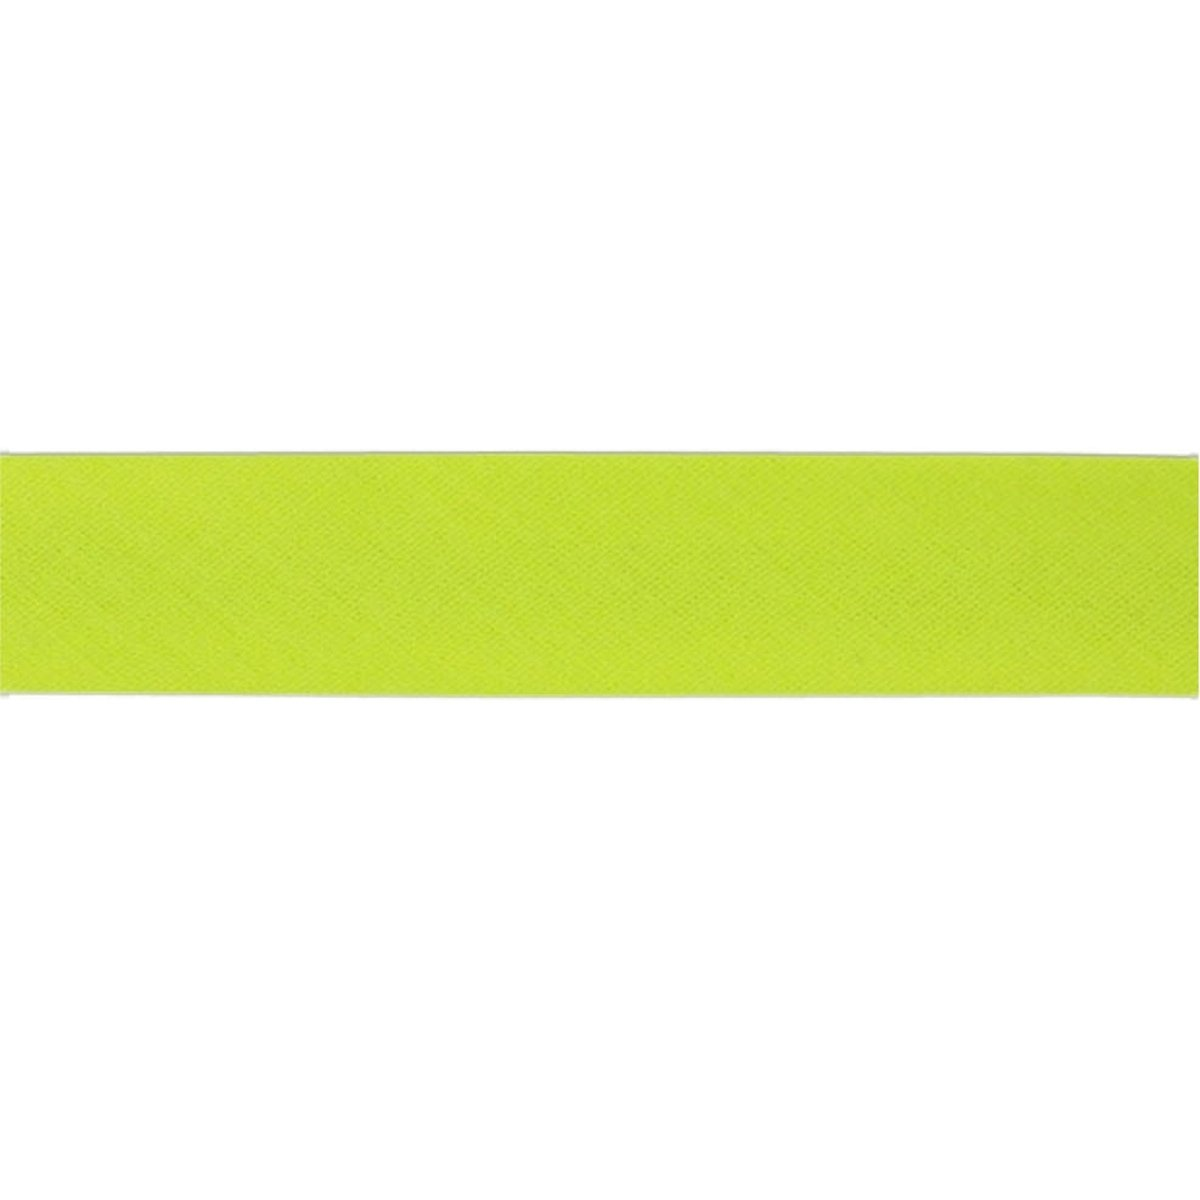 bias tape NEON, yellow